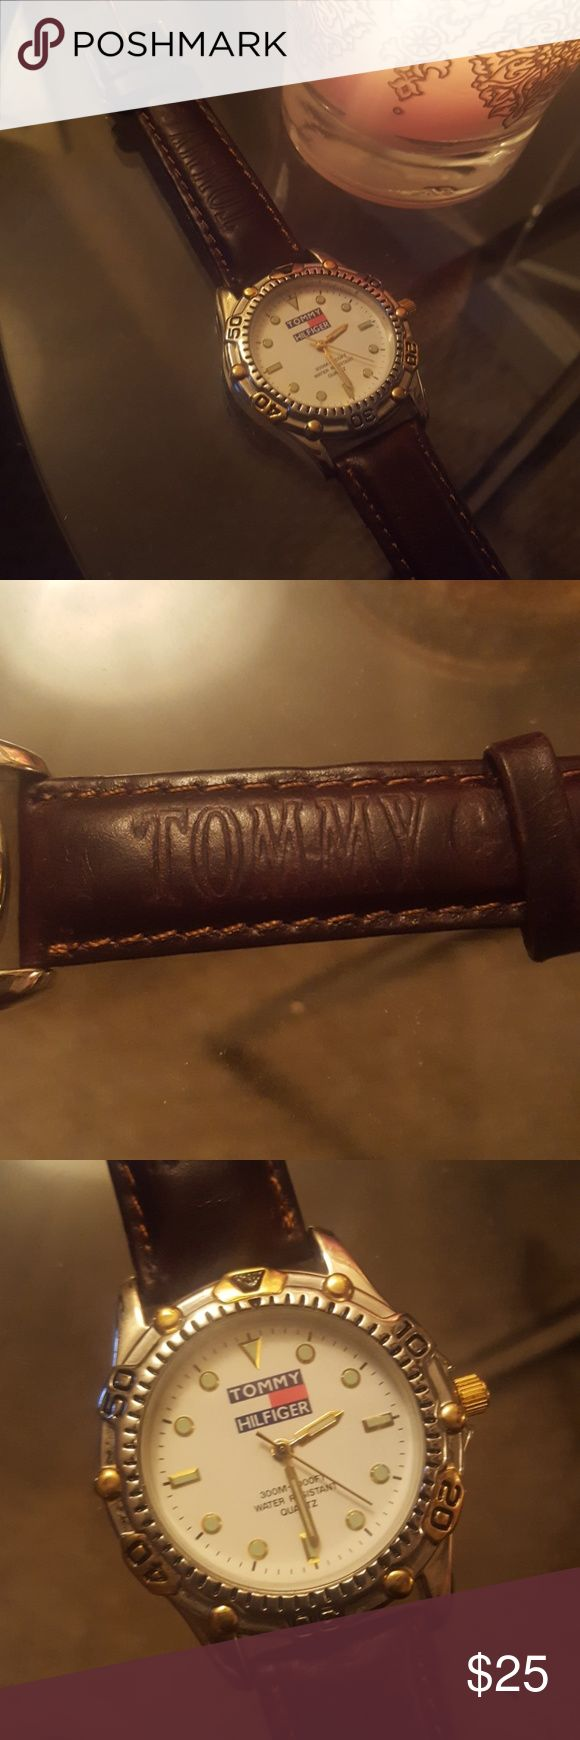 Tommy Hilfiger Watch Excellent leather band with embossed branding. Gold detail. Great condition. Tommy Hilfiger Jewelry